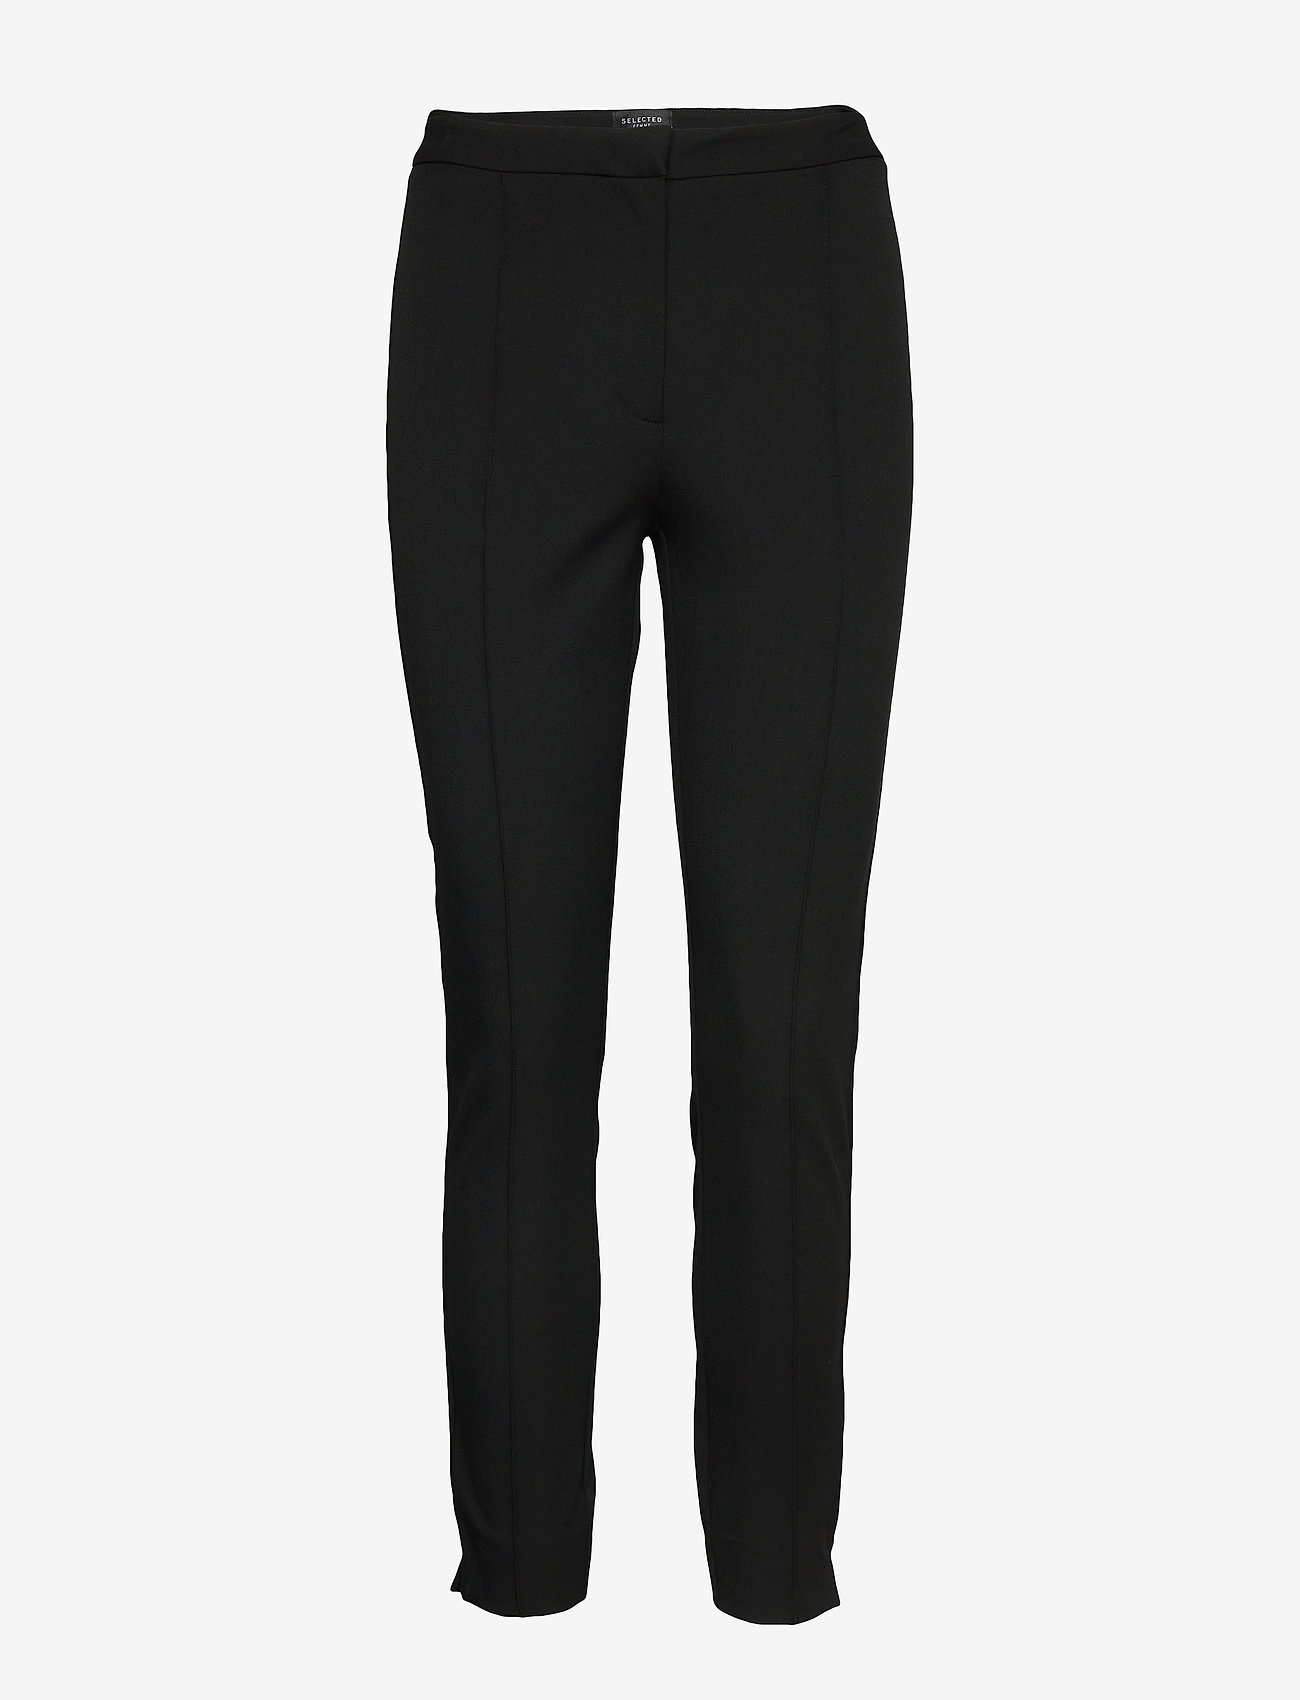 Selected Femme - SLFILUE MW PINTUCK PANT B NOOS - straight leg trousers - black - 0